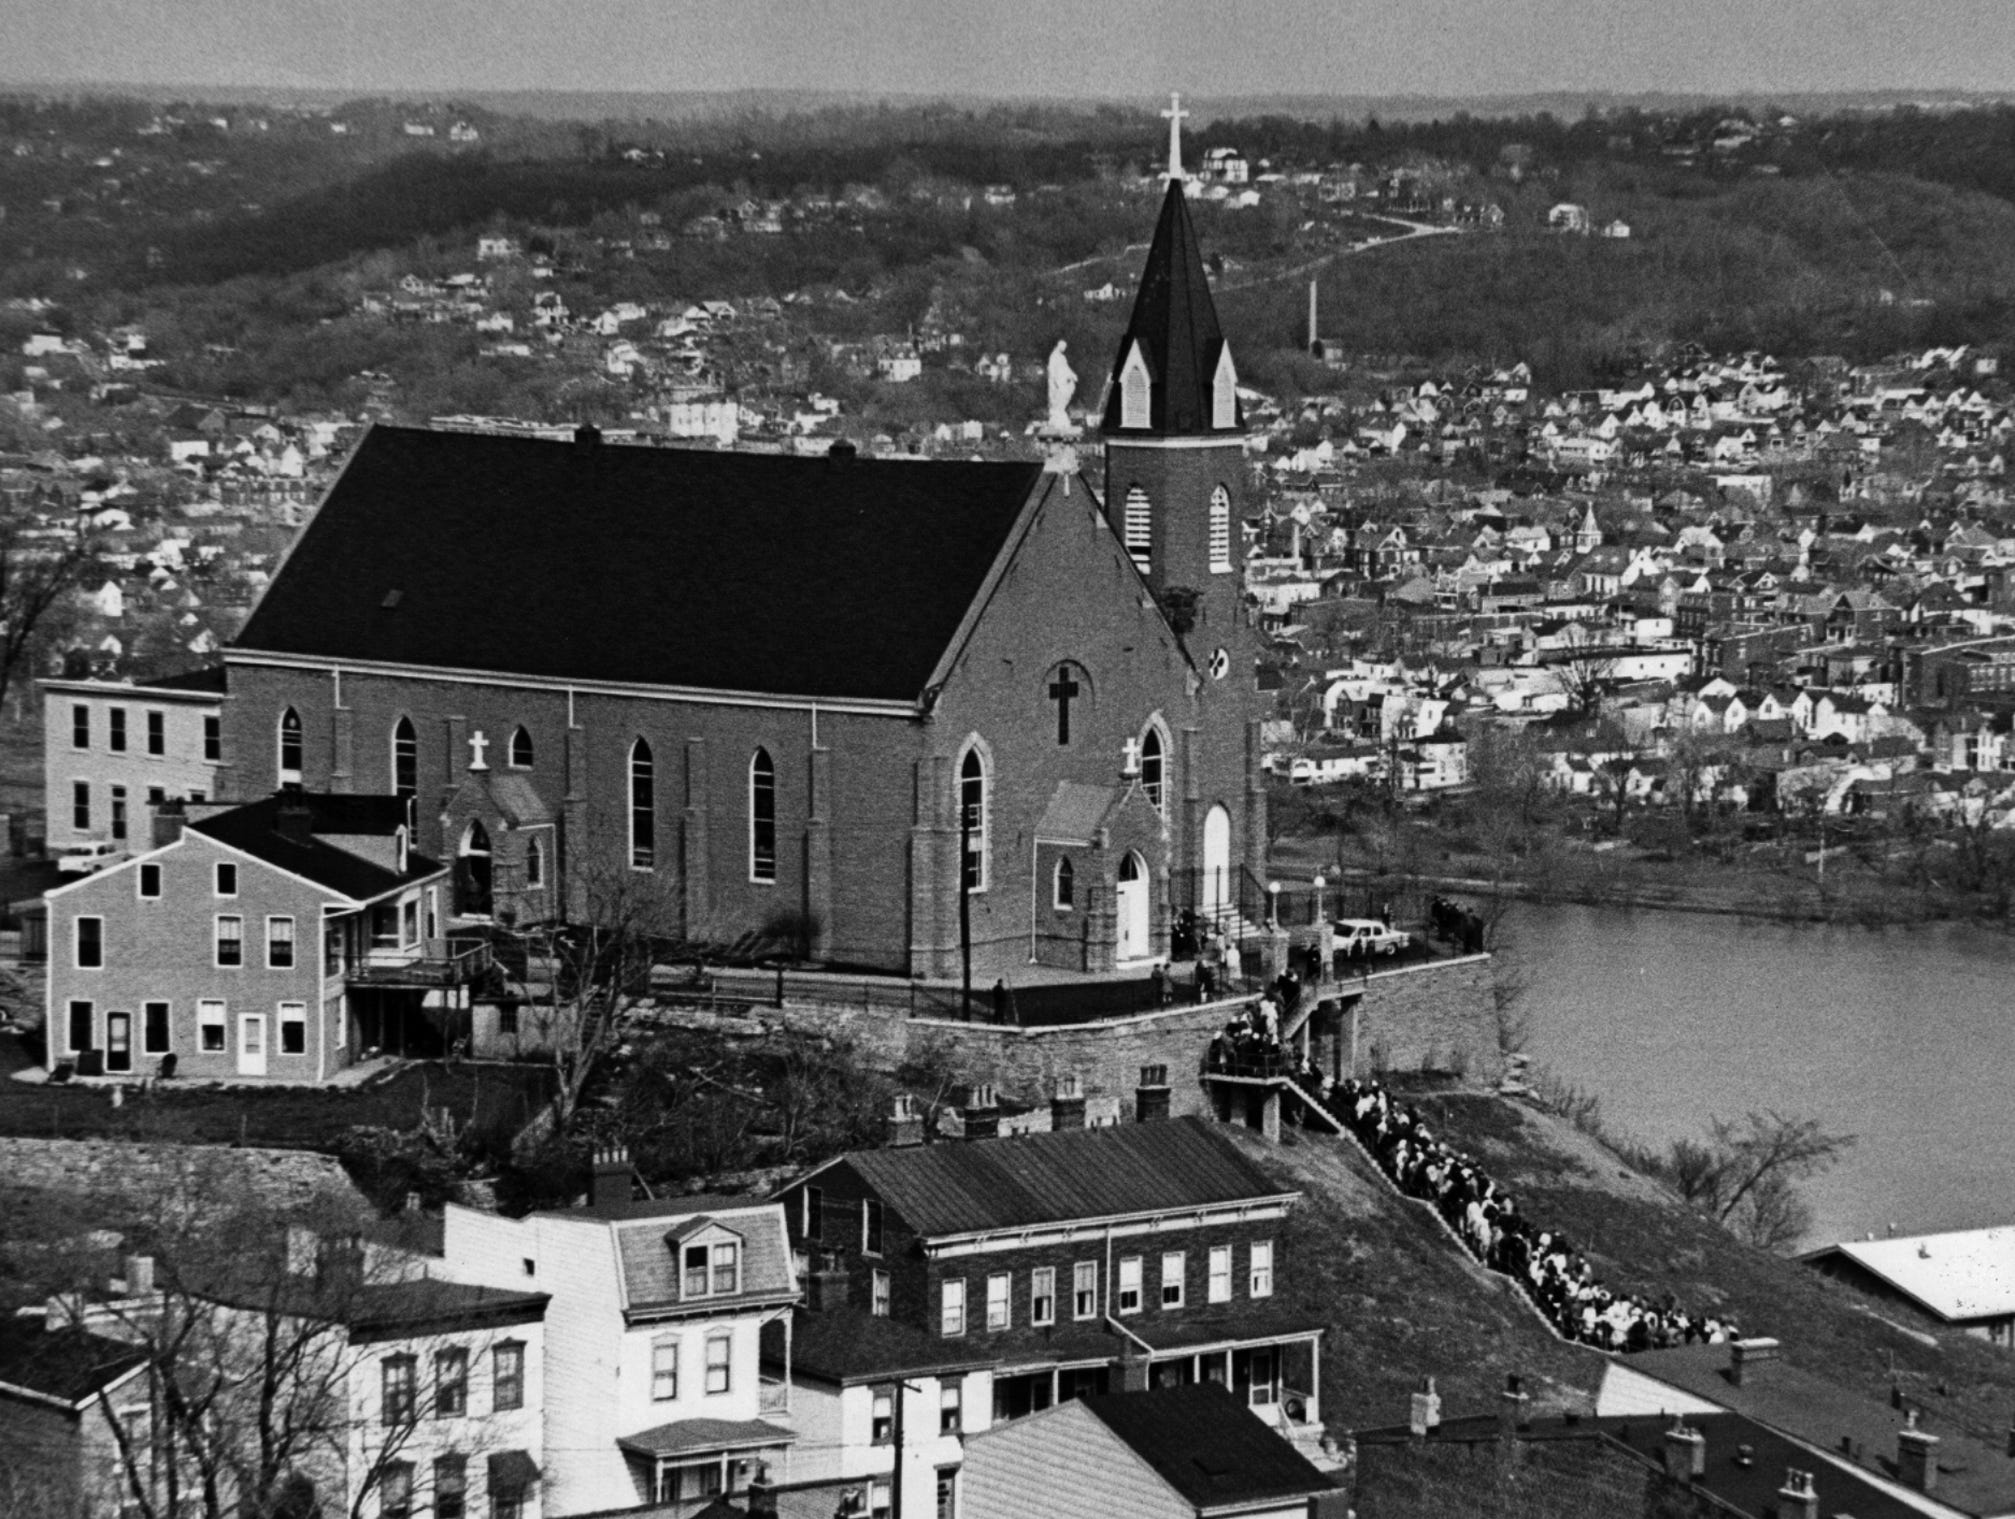 1965: The faithful make their annual Good Friday pilgrimage as they pray the step to Holly Cross-Immaculata Church in Mount Adams.